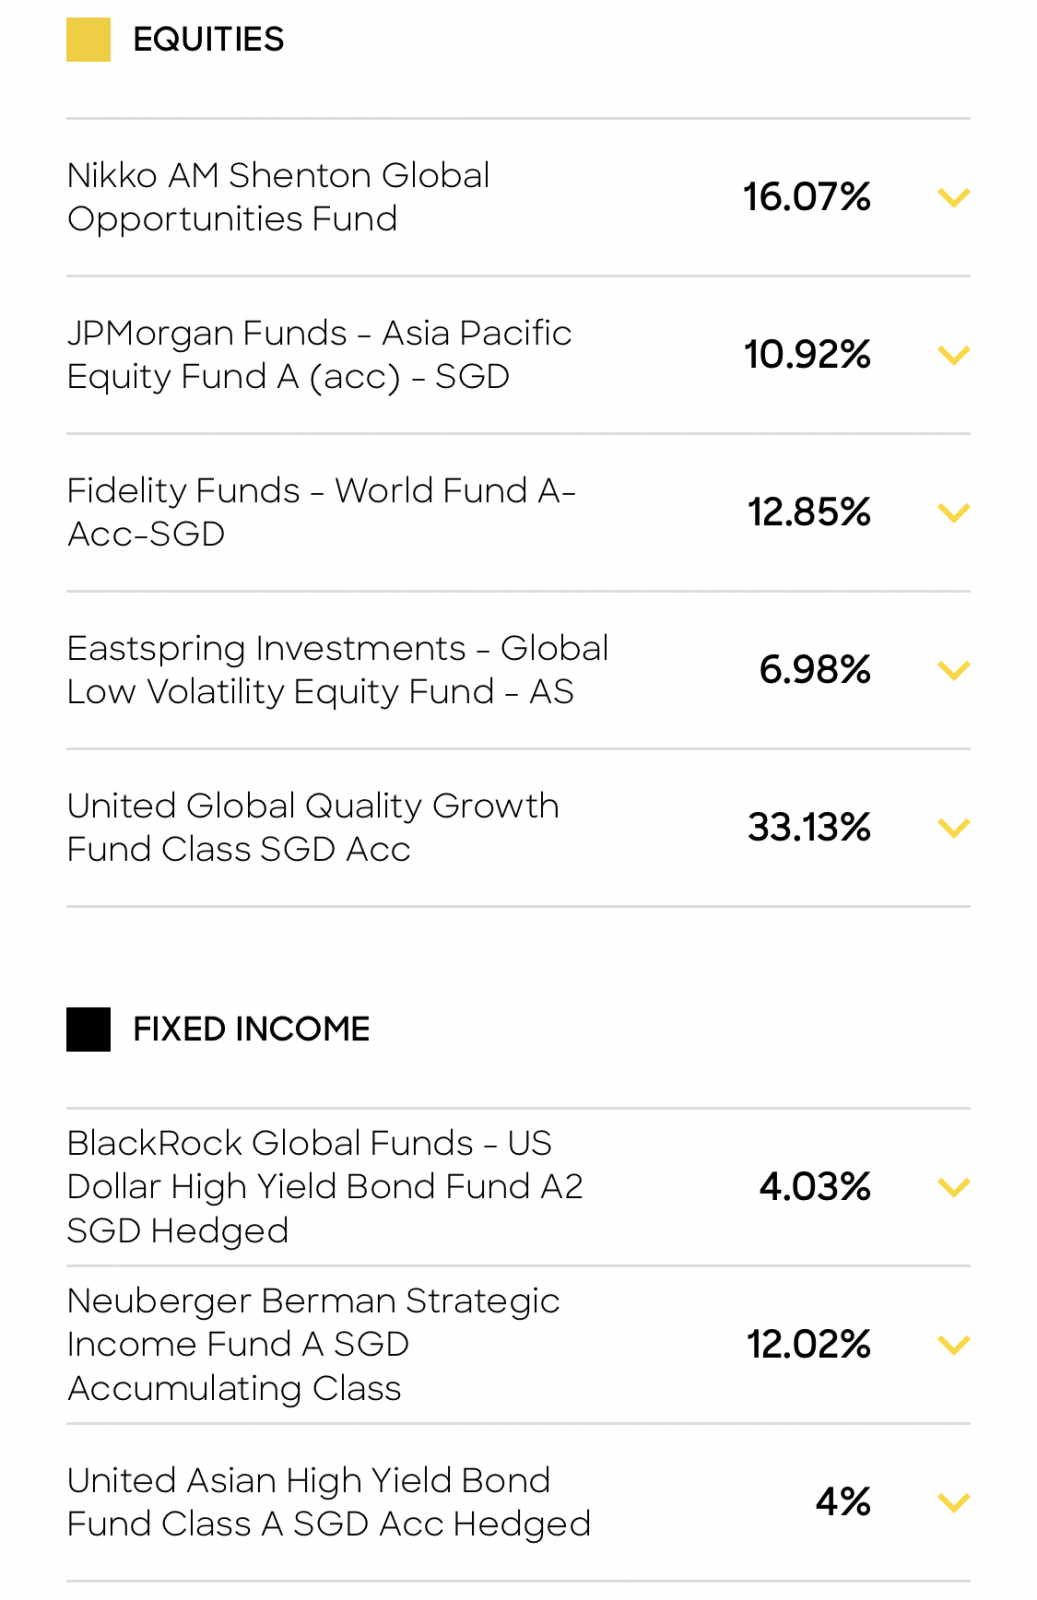 Singlife Grow Dynamic Funds